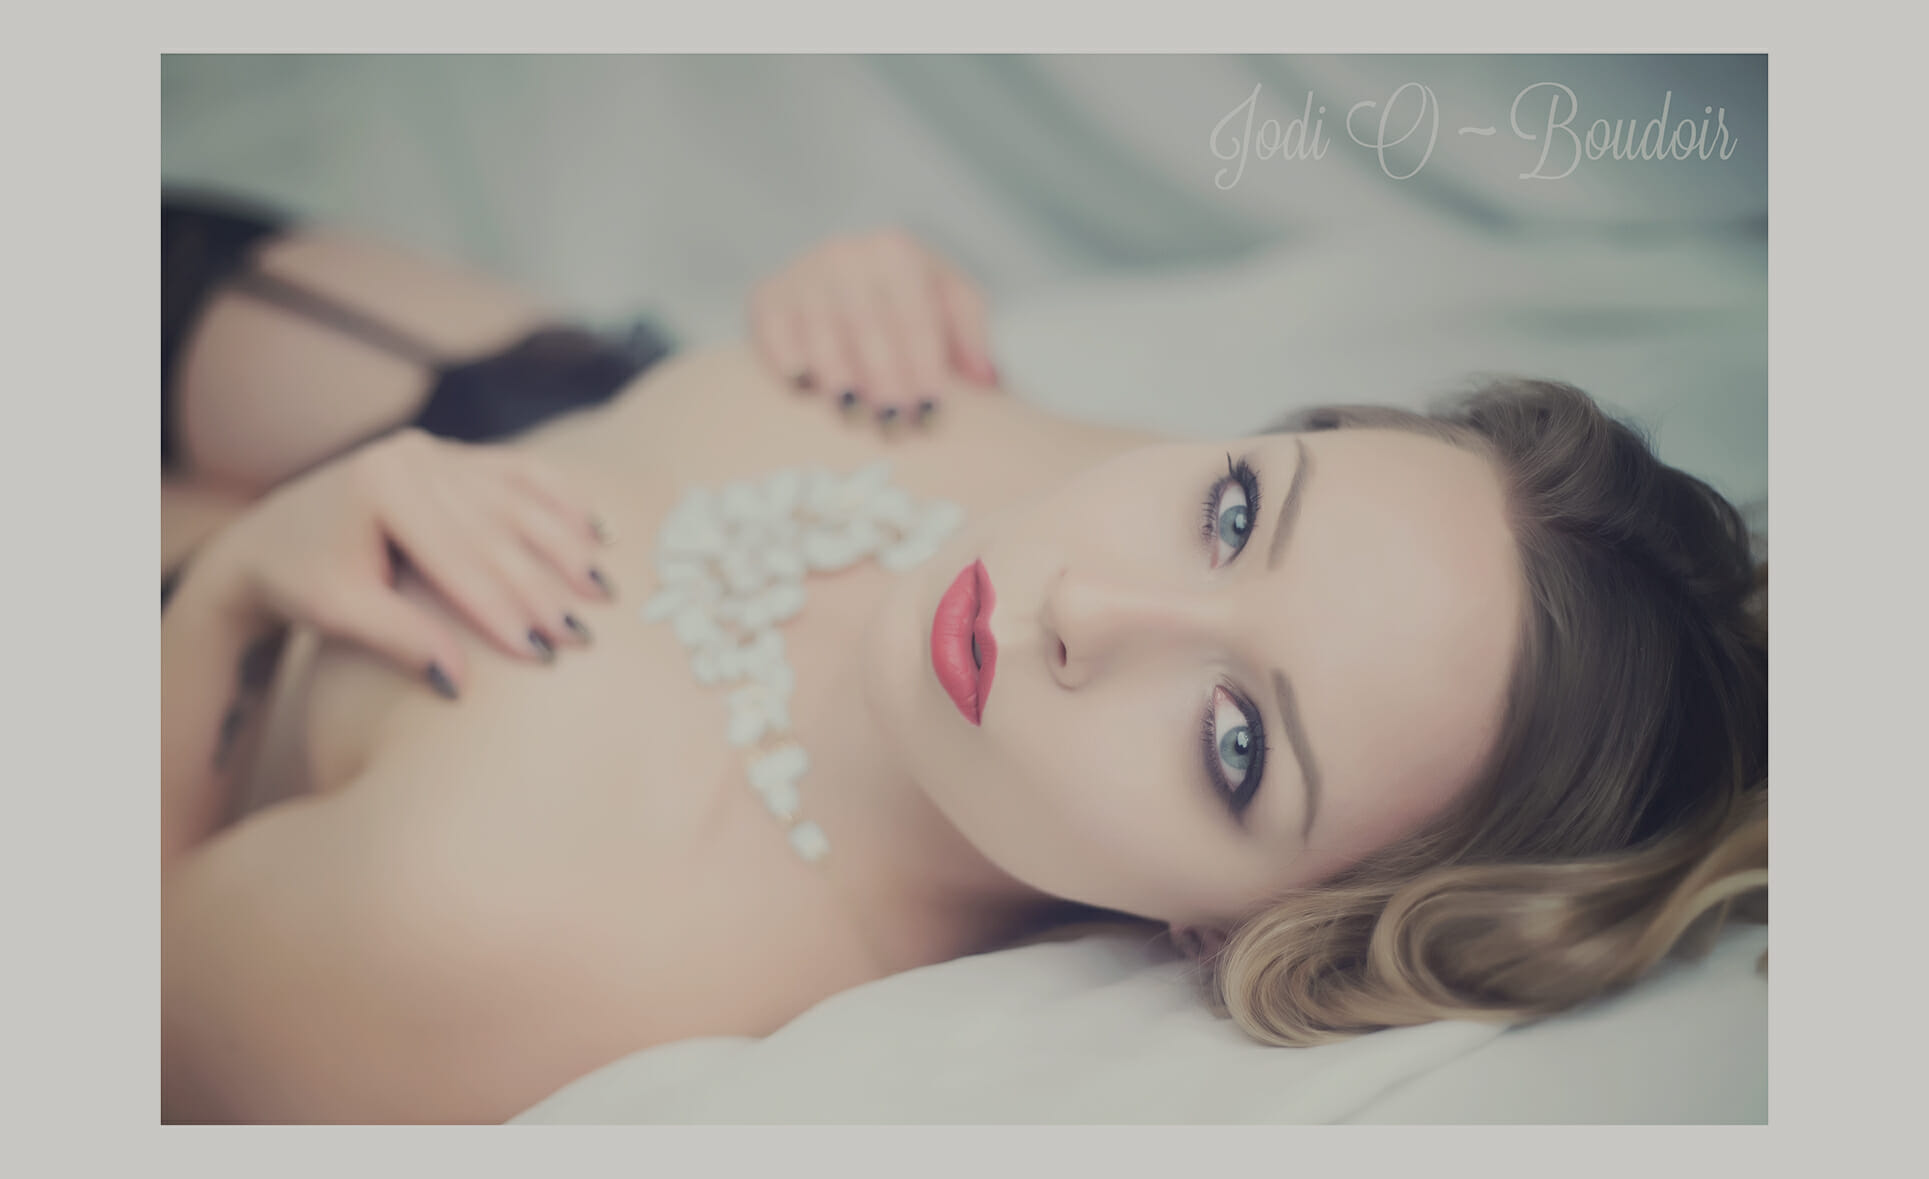 boudoir photographer in calgary